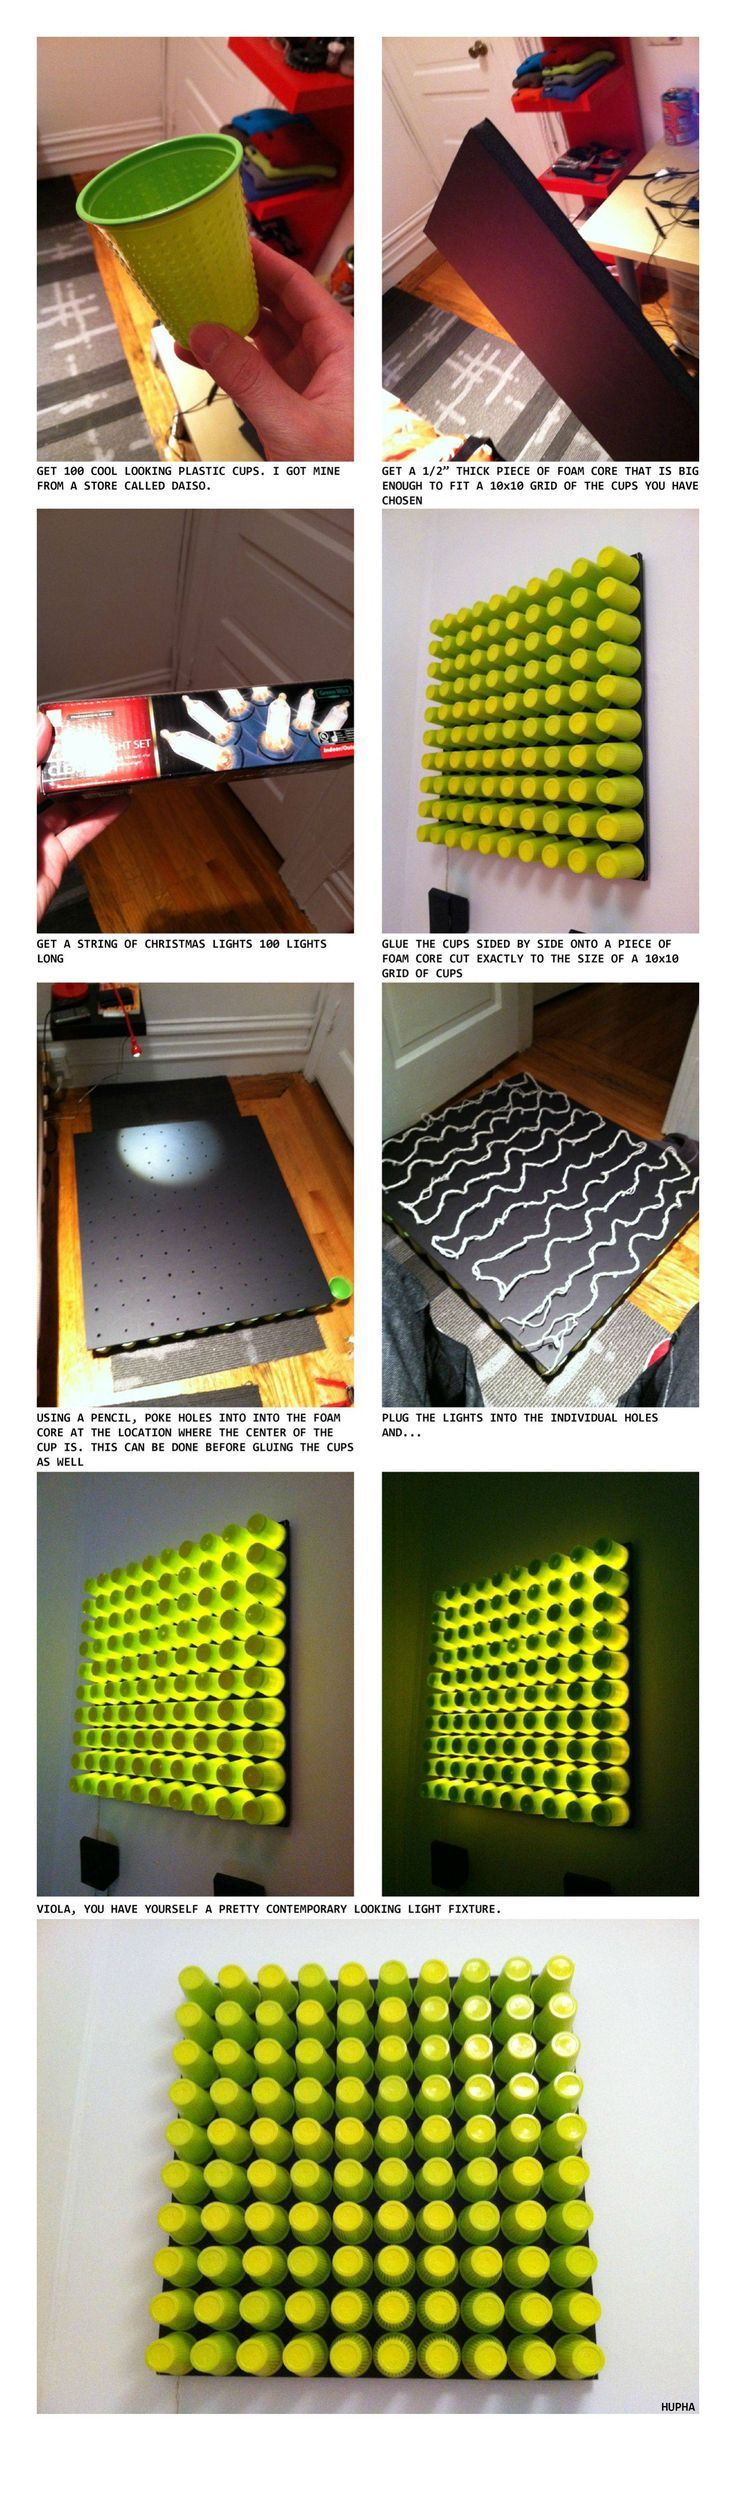 Foam core + glue + plastic cups + Christmas lights = Cool light fixture (do word or name)